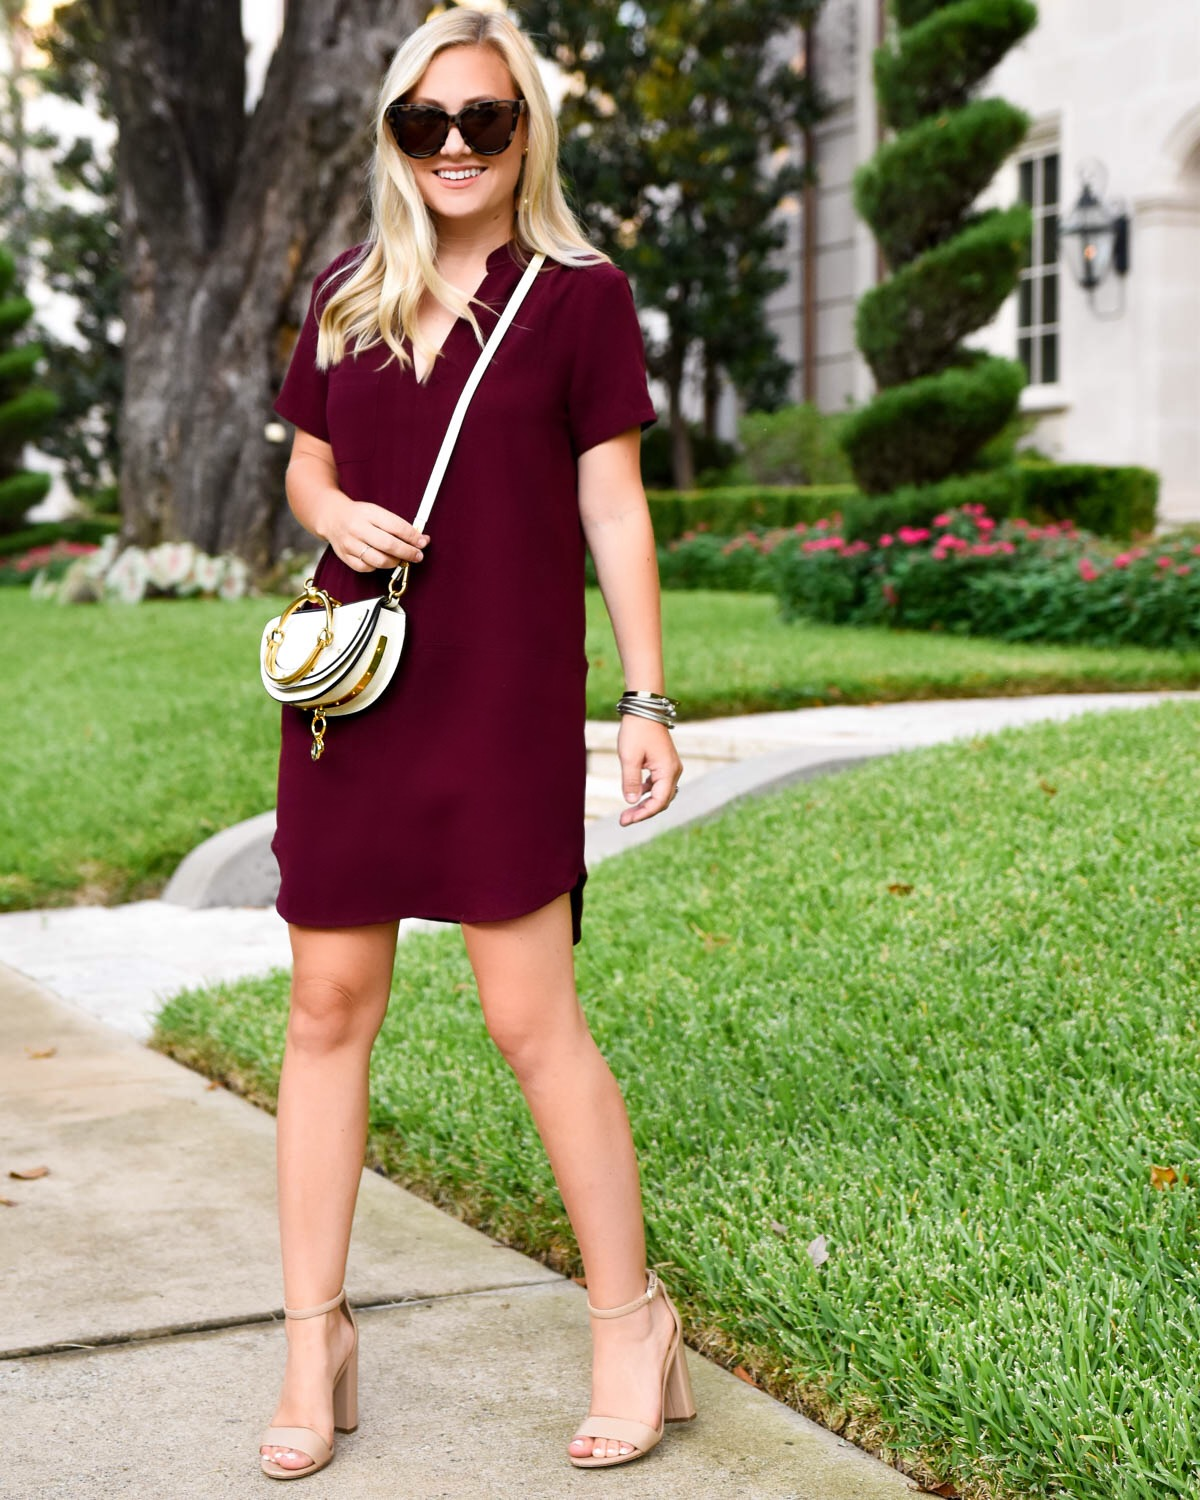 Nordstrom Dress, Leith Dress, Deep Red Fall Dress, Chloe Nile Handbag, Fall Outfit Inspiration, Easy Fall Dress, Dress under $50 for fall